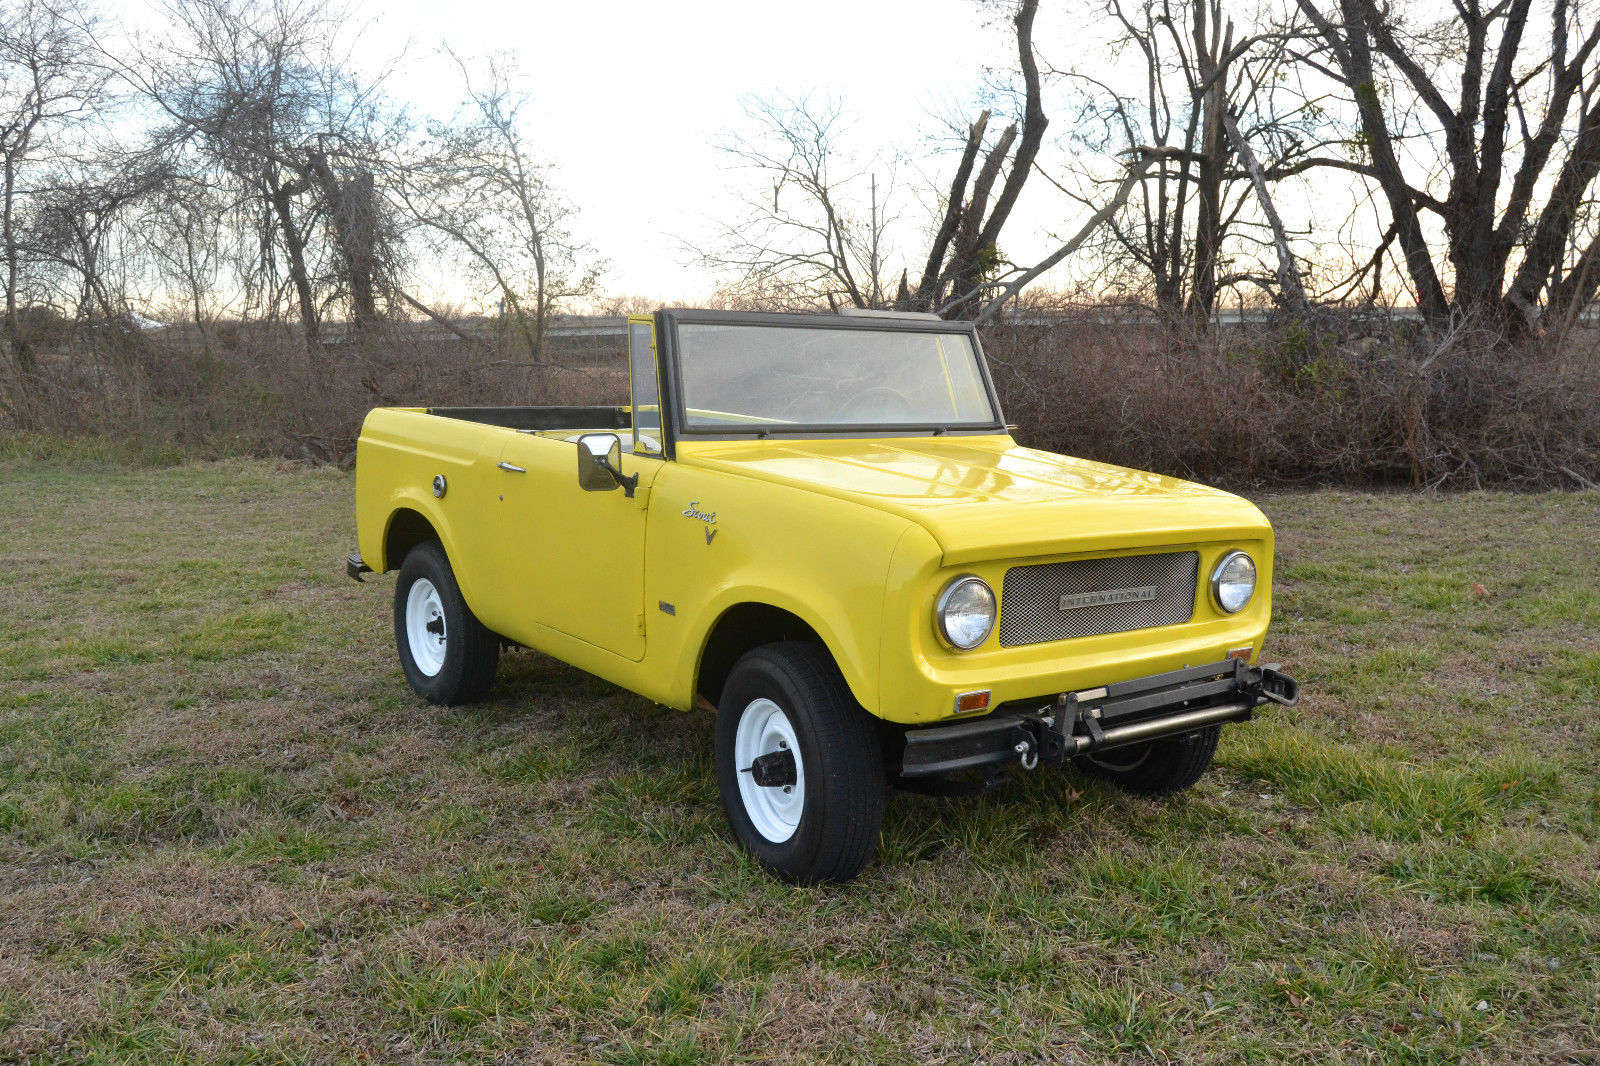 truck  yellow  convertible  4x4  bronco  pickup  v8 used manual transmission pickup trucks for sale Chevy 5 Speed Manual Transmission